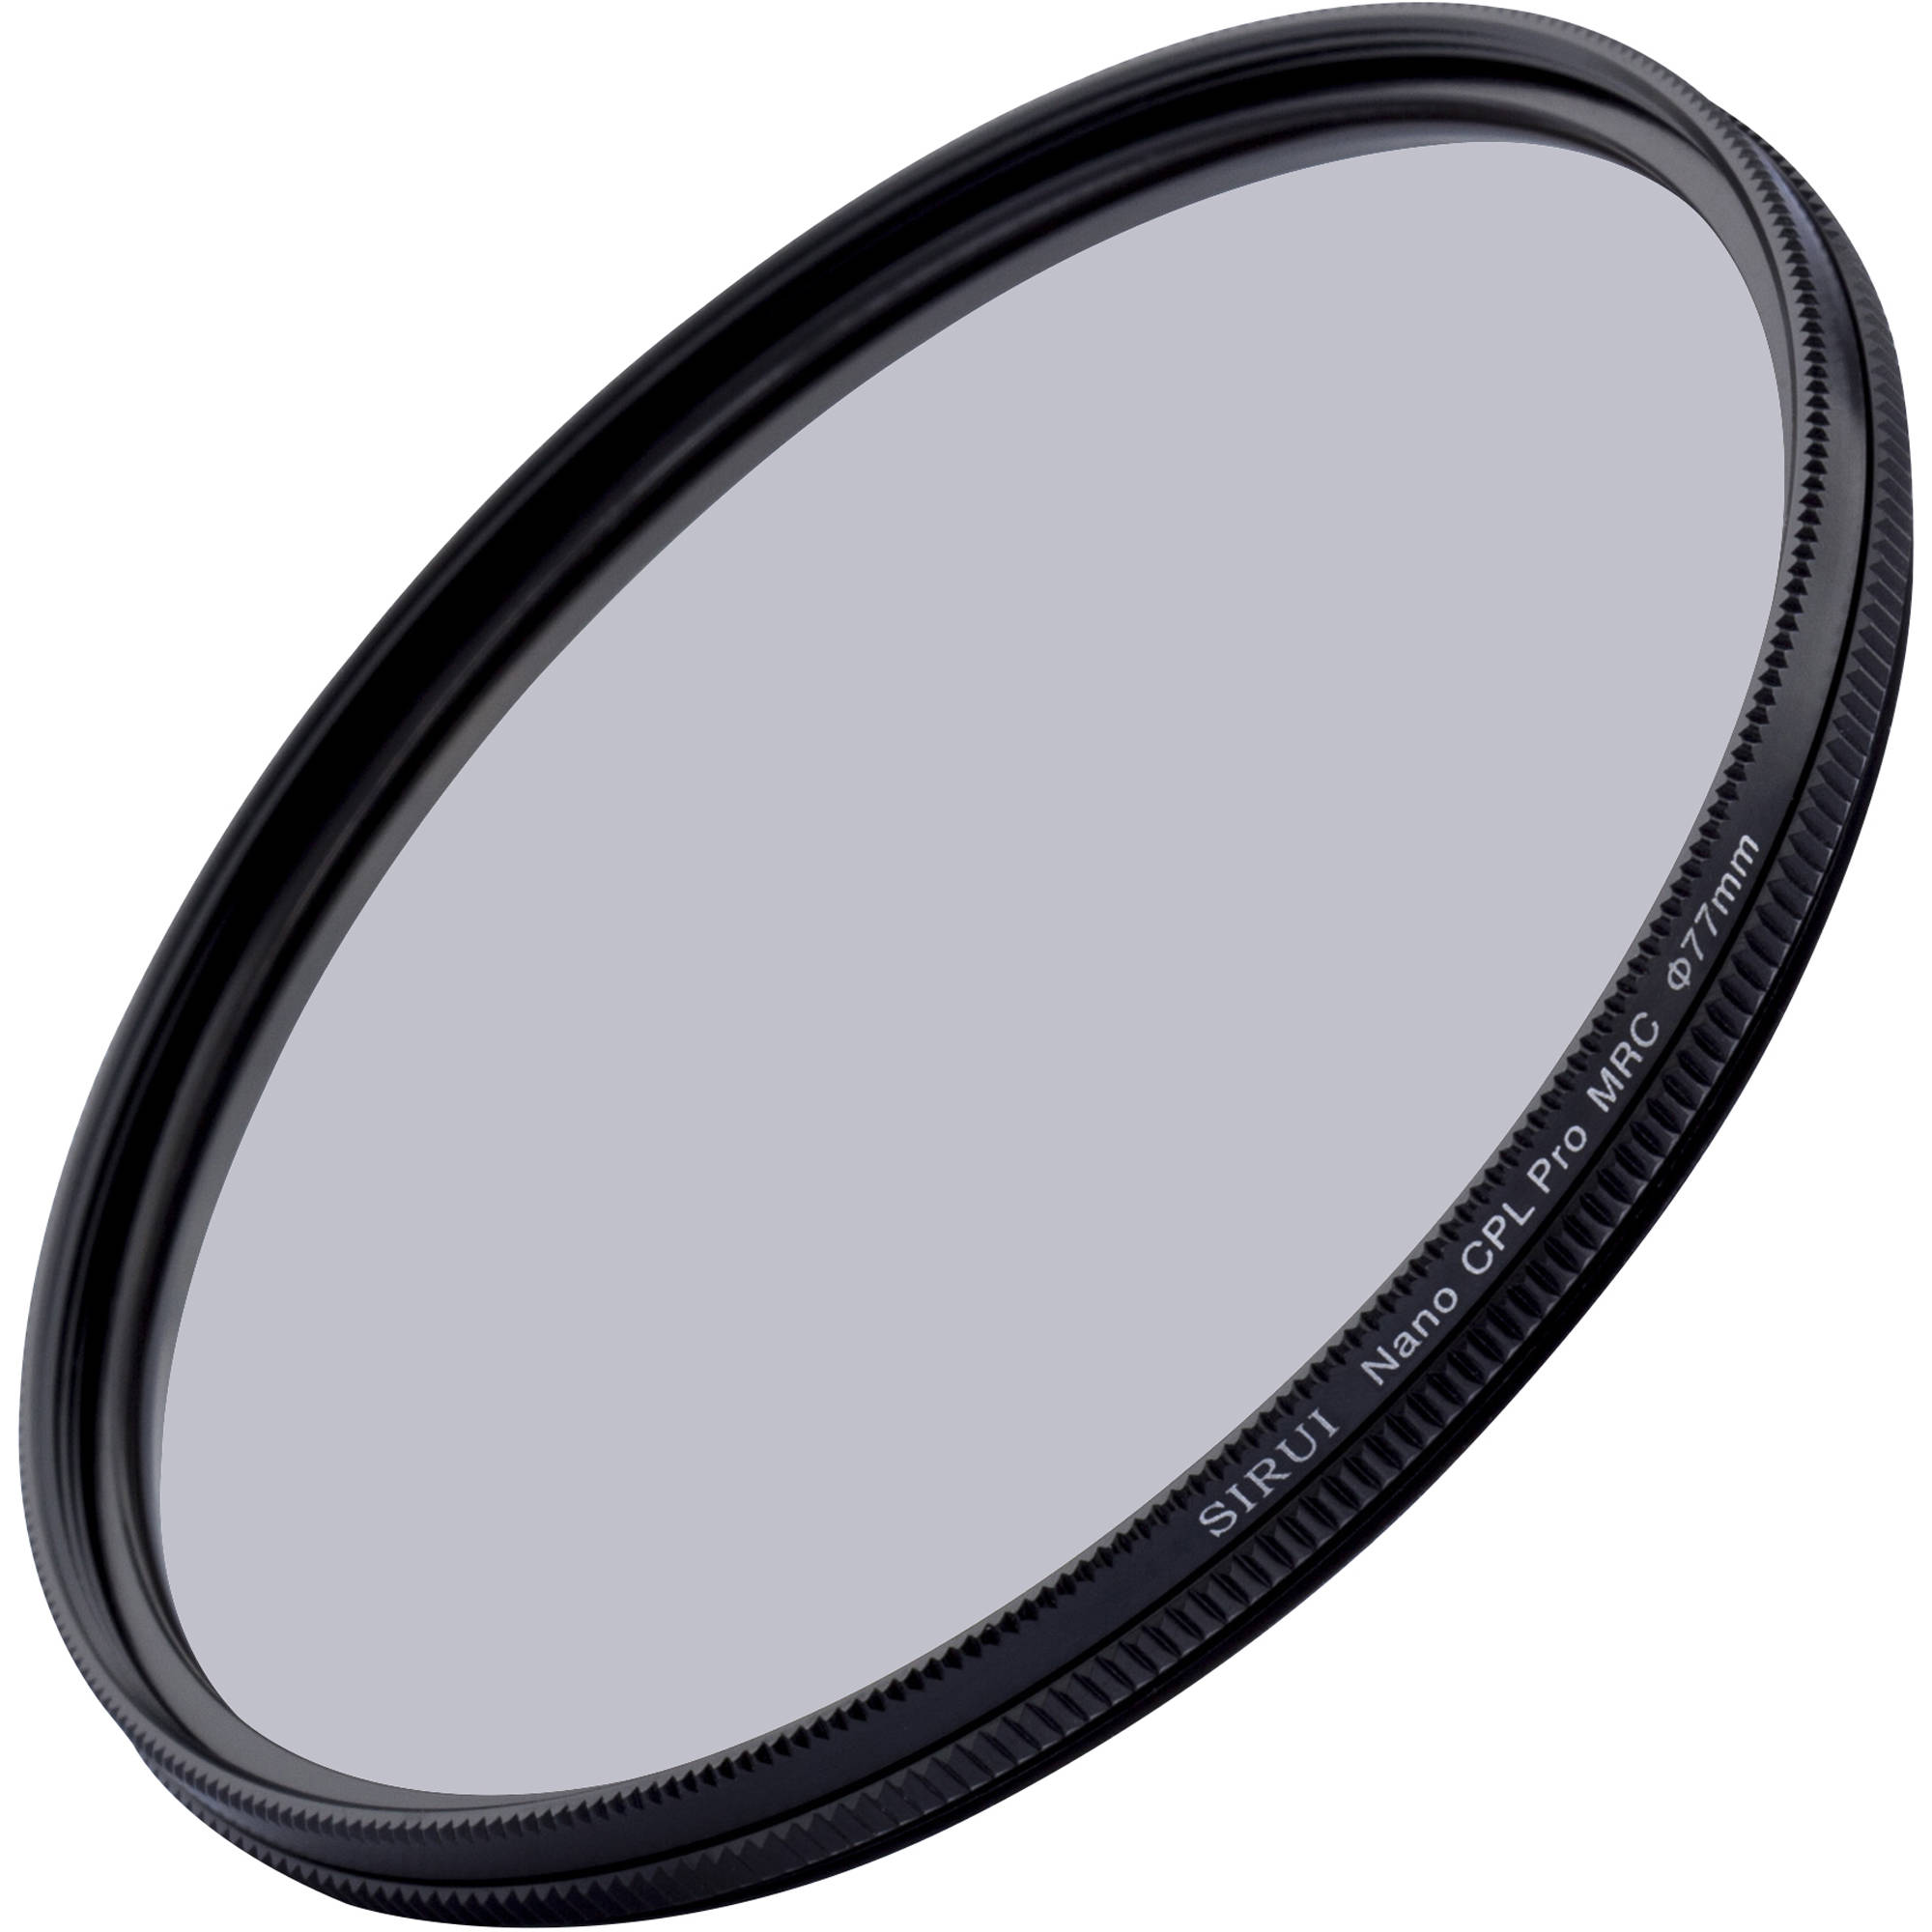 67mm Circular Polarizer Multicoated Glass Filter for Samsung NX1100 CPL Microfiber Cleaning Cloth